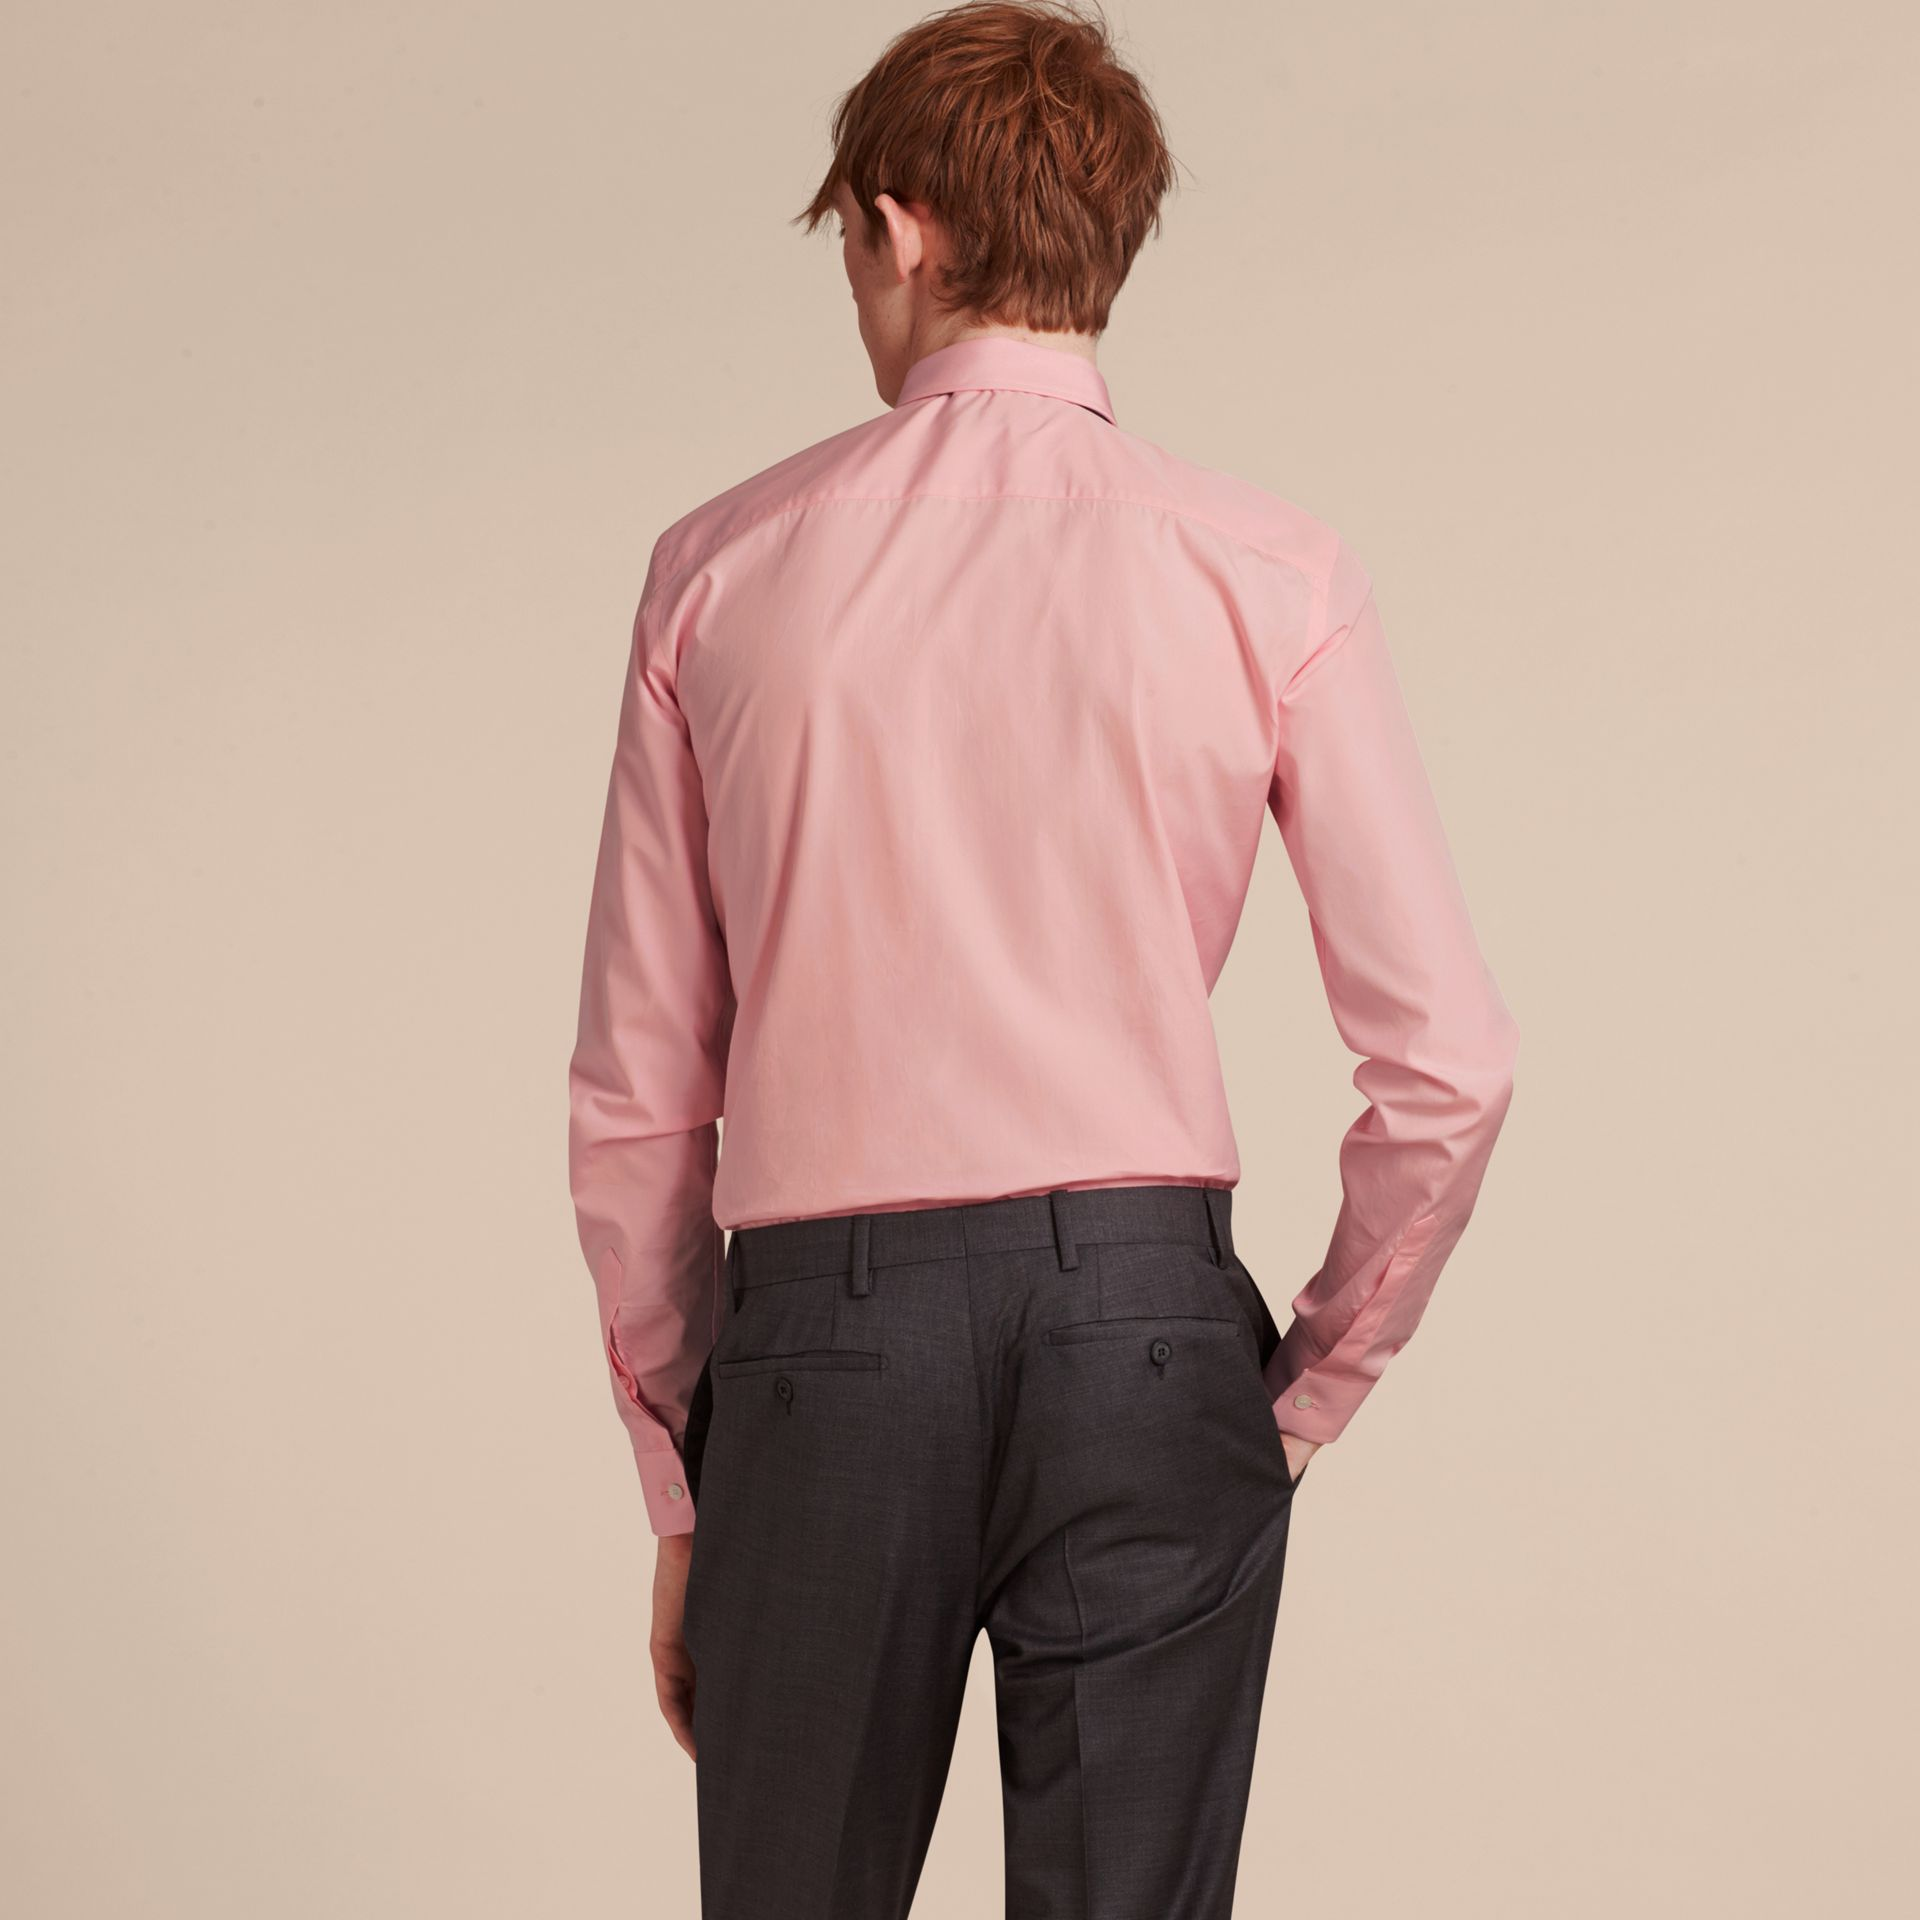 Slim Fit Cotton Poplin Shirt in City Pink - Men | Burberry - gallery image 3